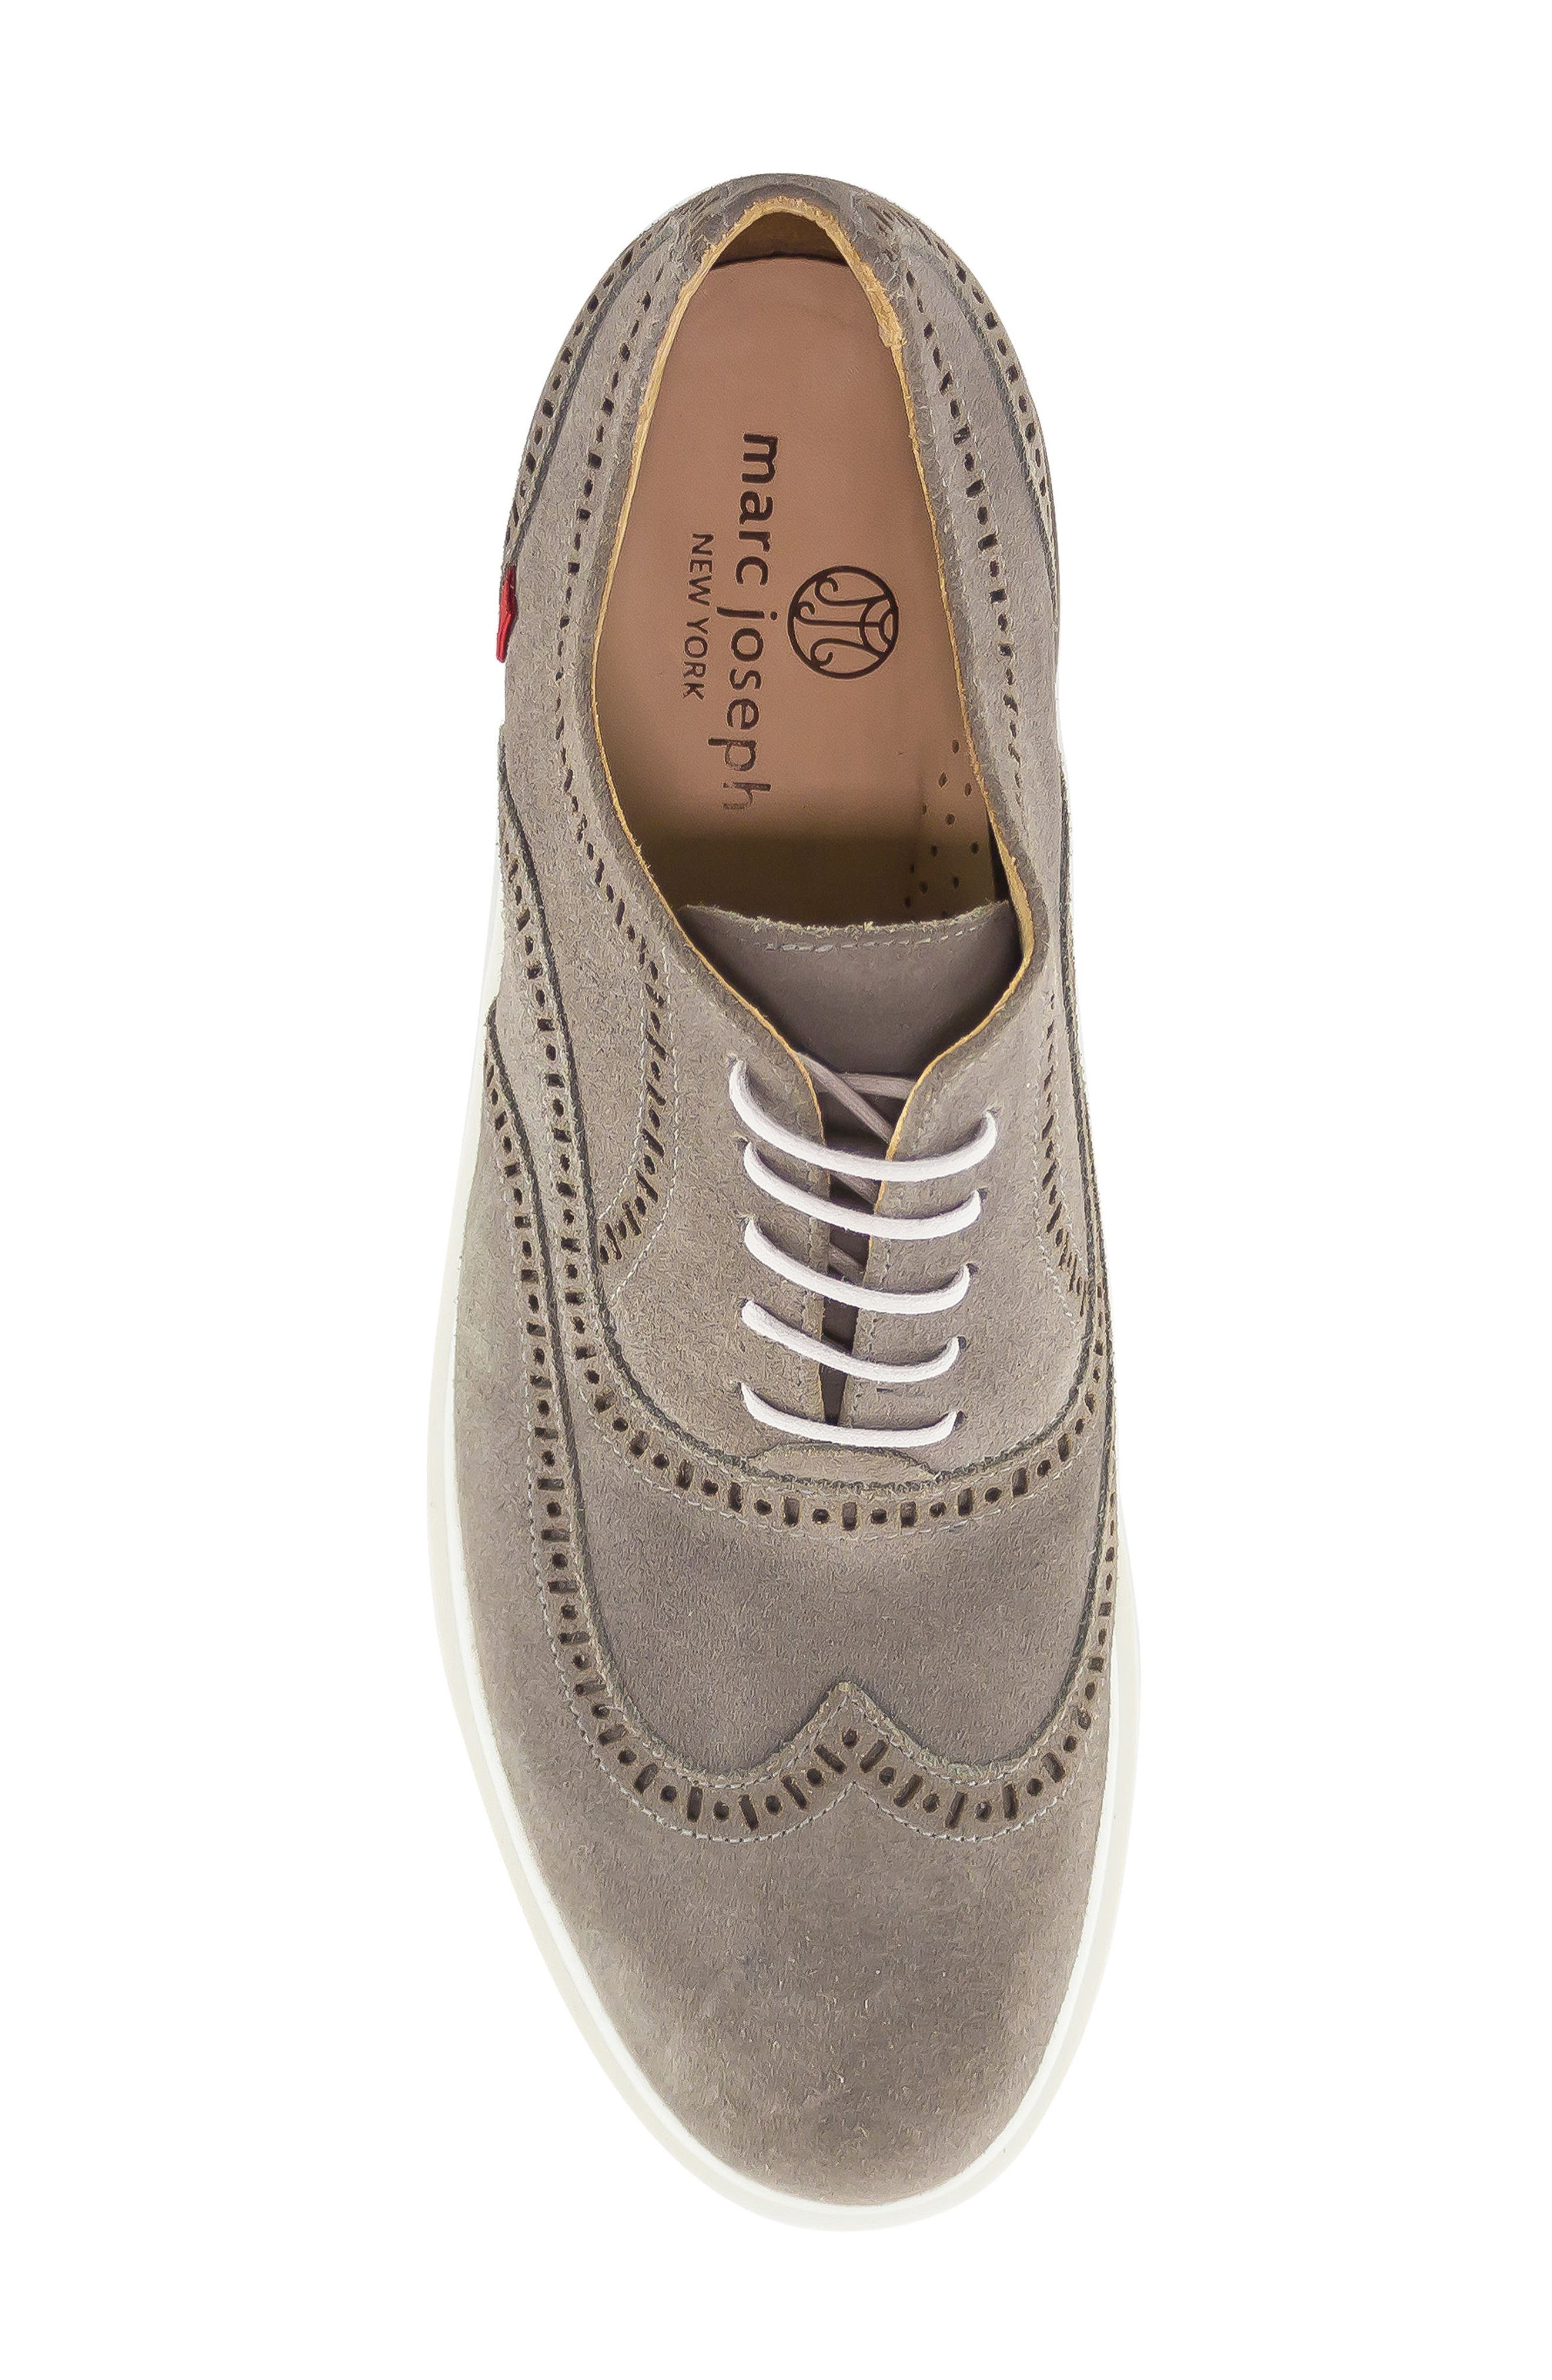 5th Ave Wingtip Sneaker,                             Alternate thumbnail 5, color,                             GREY SUEDE